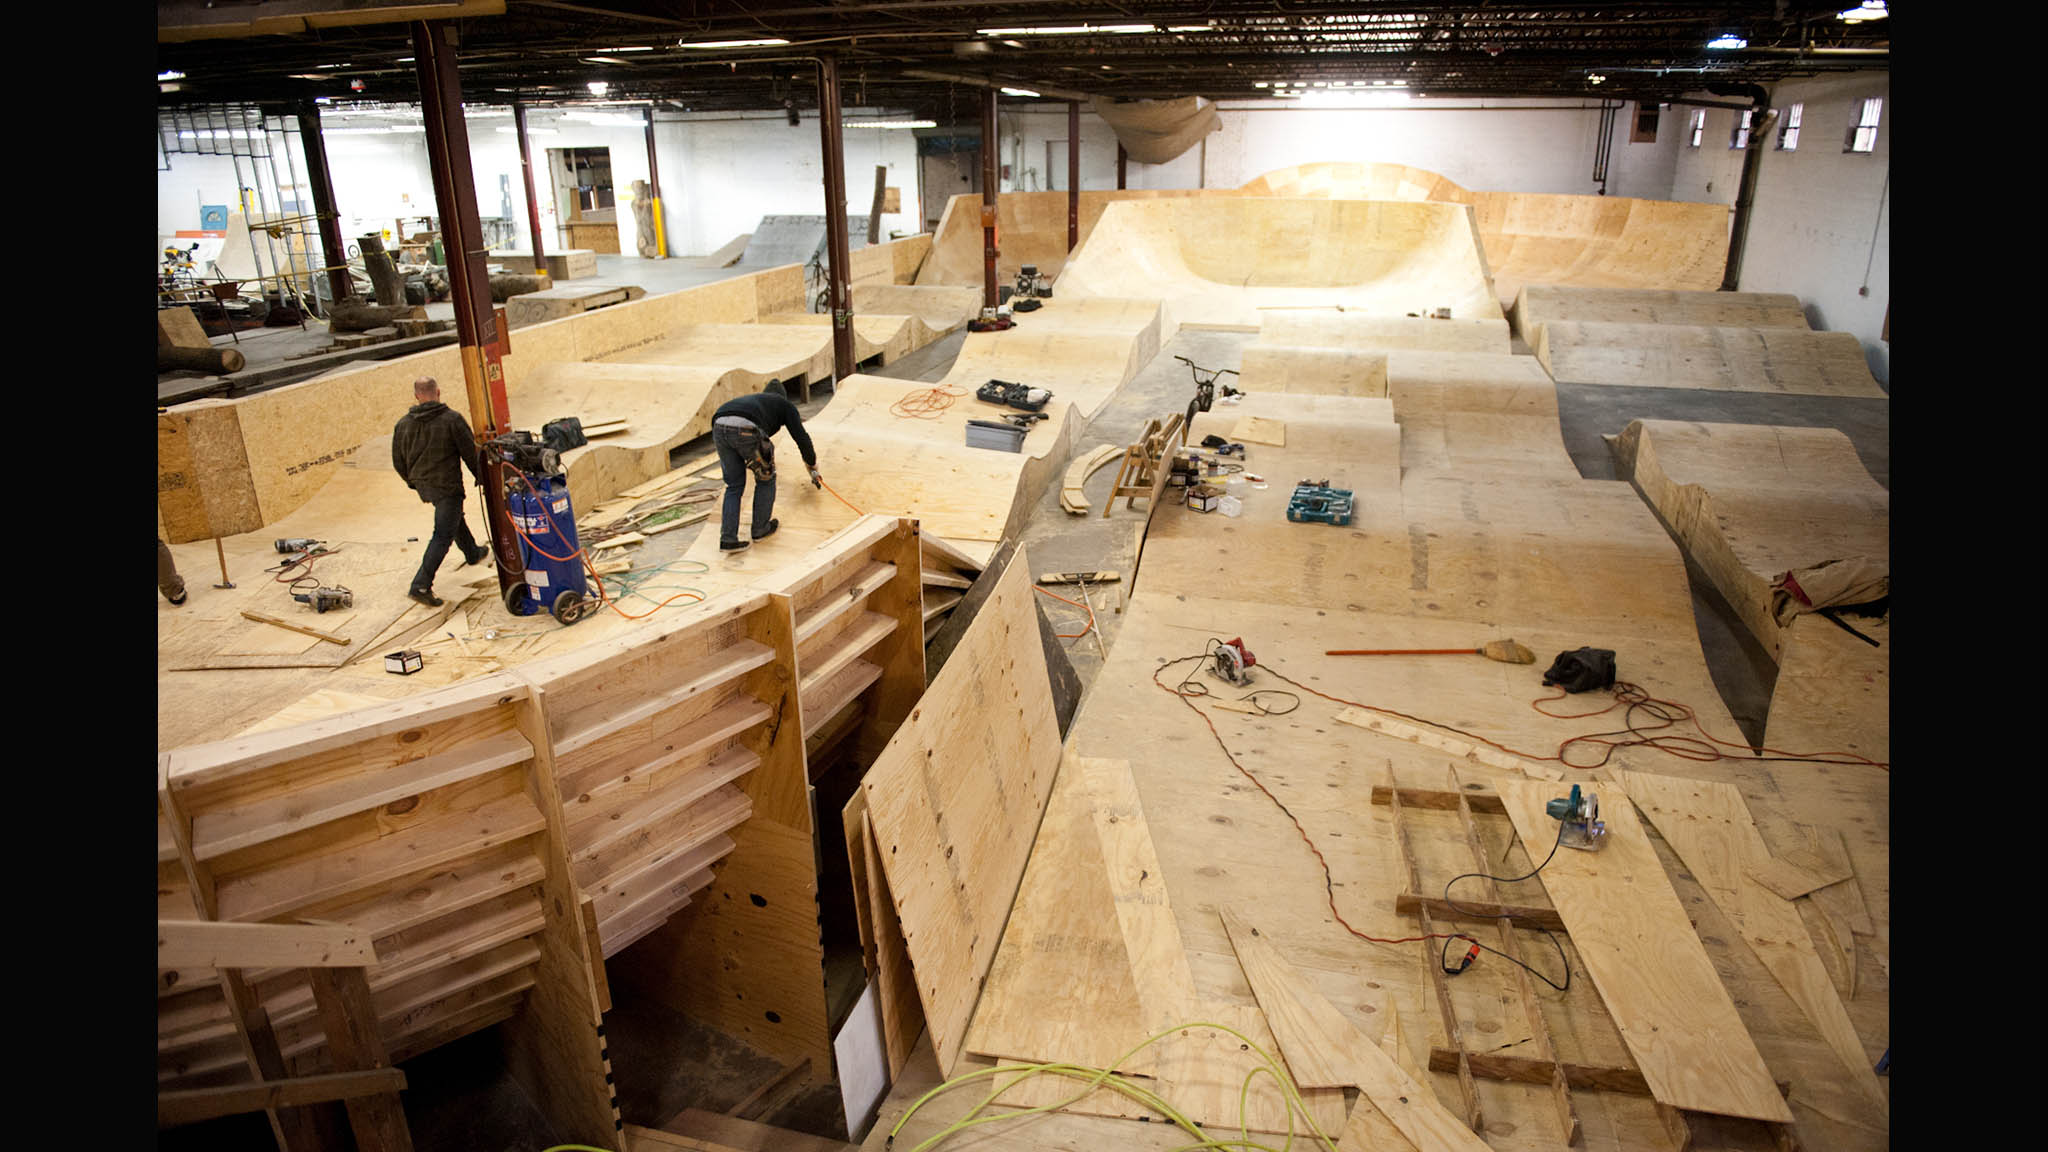 Wheel Mill Bmx Park Wheel Mill Bike Park x